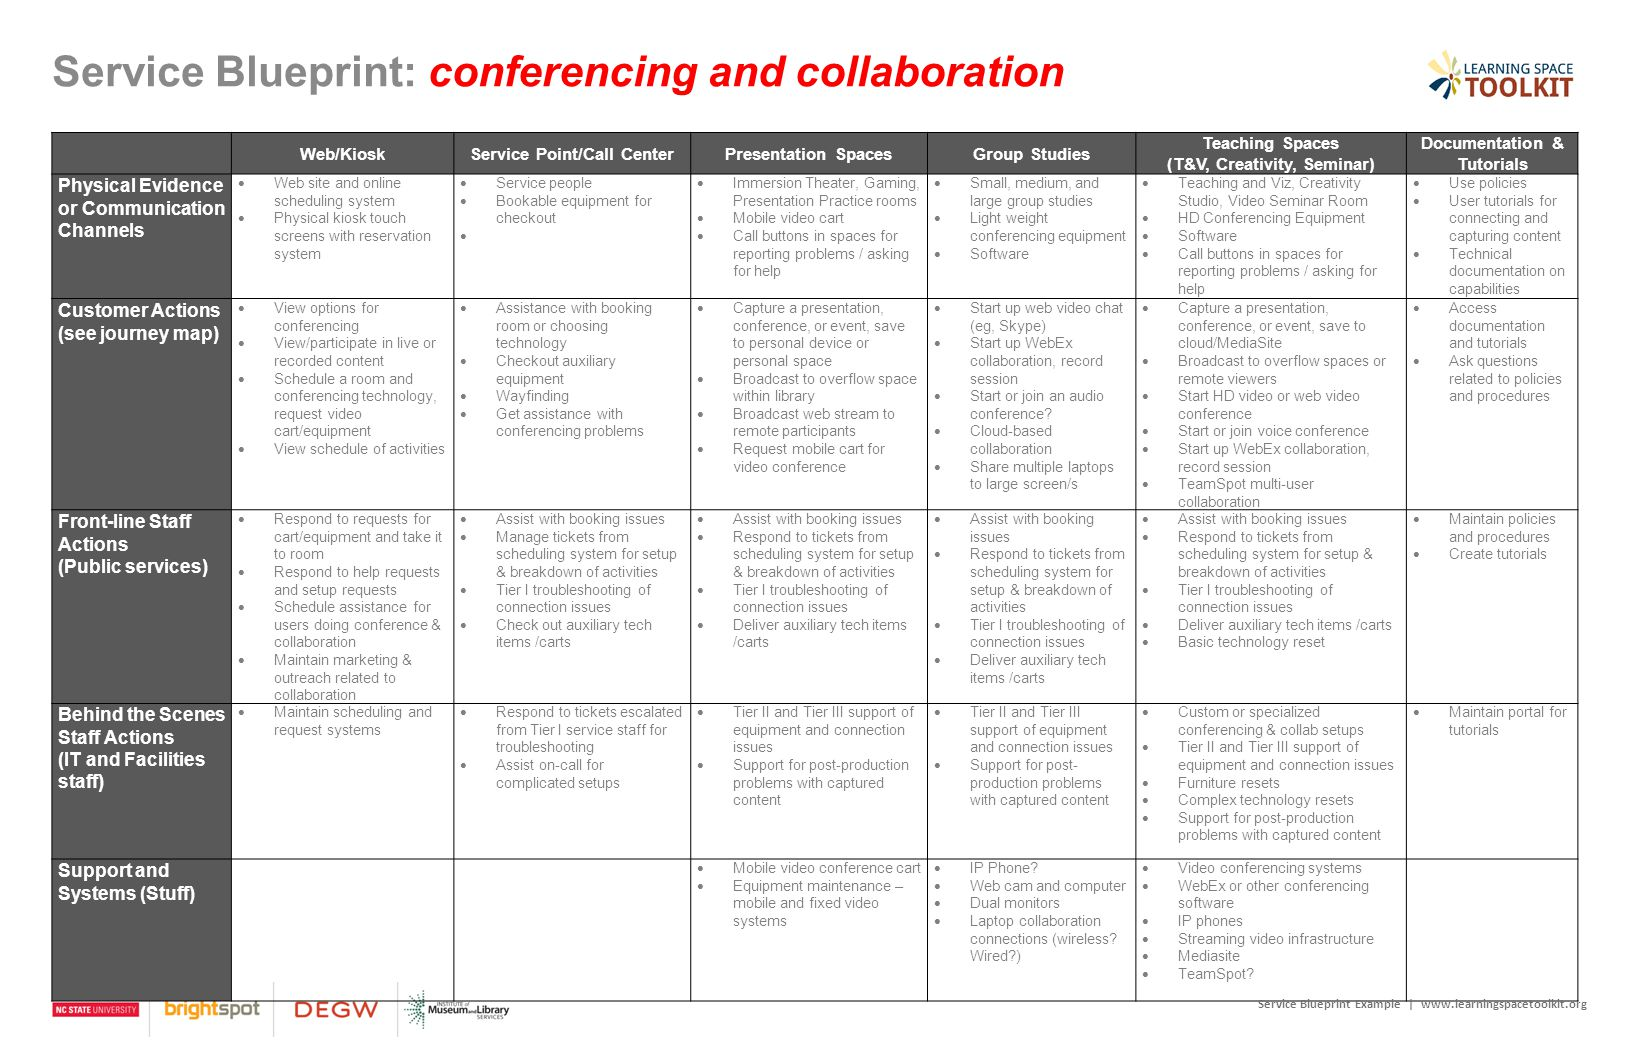 Service blueprint conferencing and collaboration webkioskservice service blueprint conferencing and collaboration webkioskservice pointcall centerpresentation spacesgroup studies teaching malvernweather